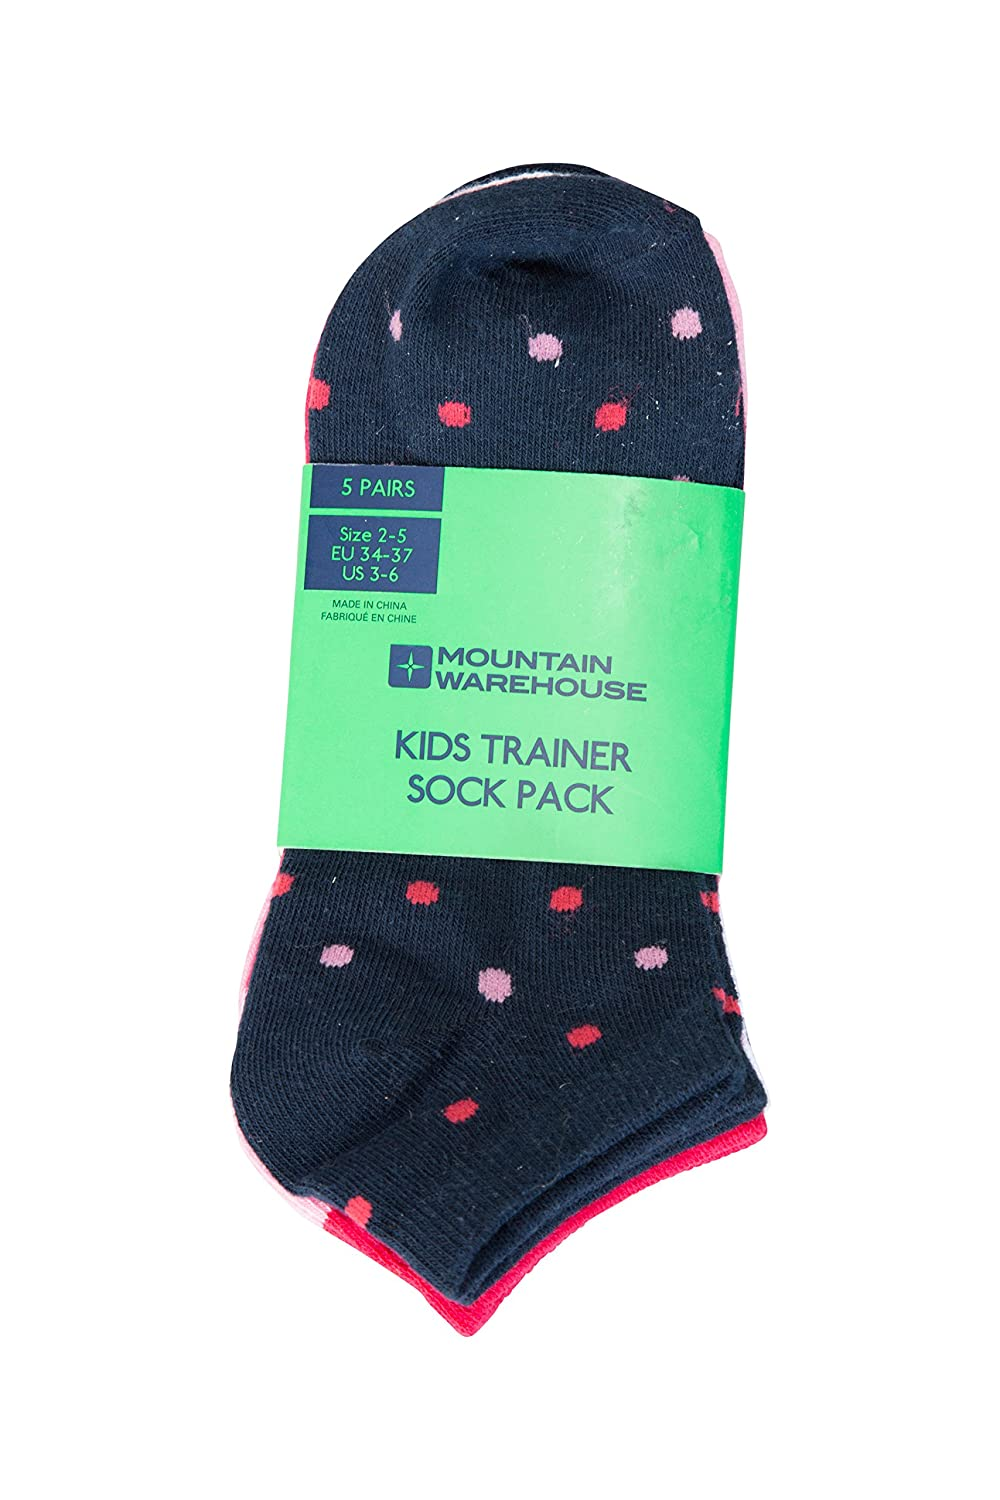 Mountain Warehouse Spot Girls Trainer Socks - Breathable Kids Socks, Durable Summer Socks, Elastic Cuffs Childrens Socks, Easy Care - for Walking, Sports, Running